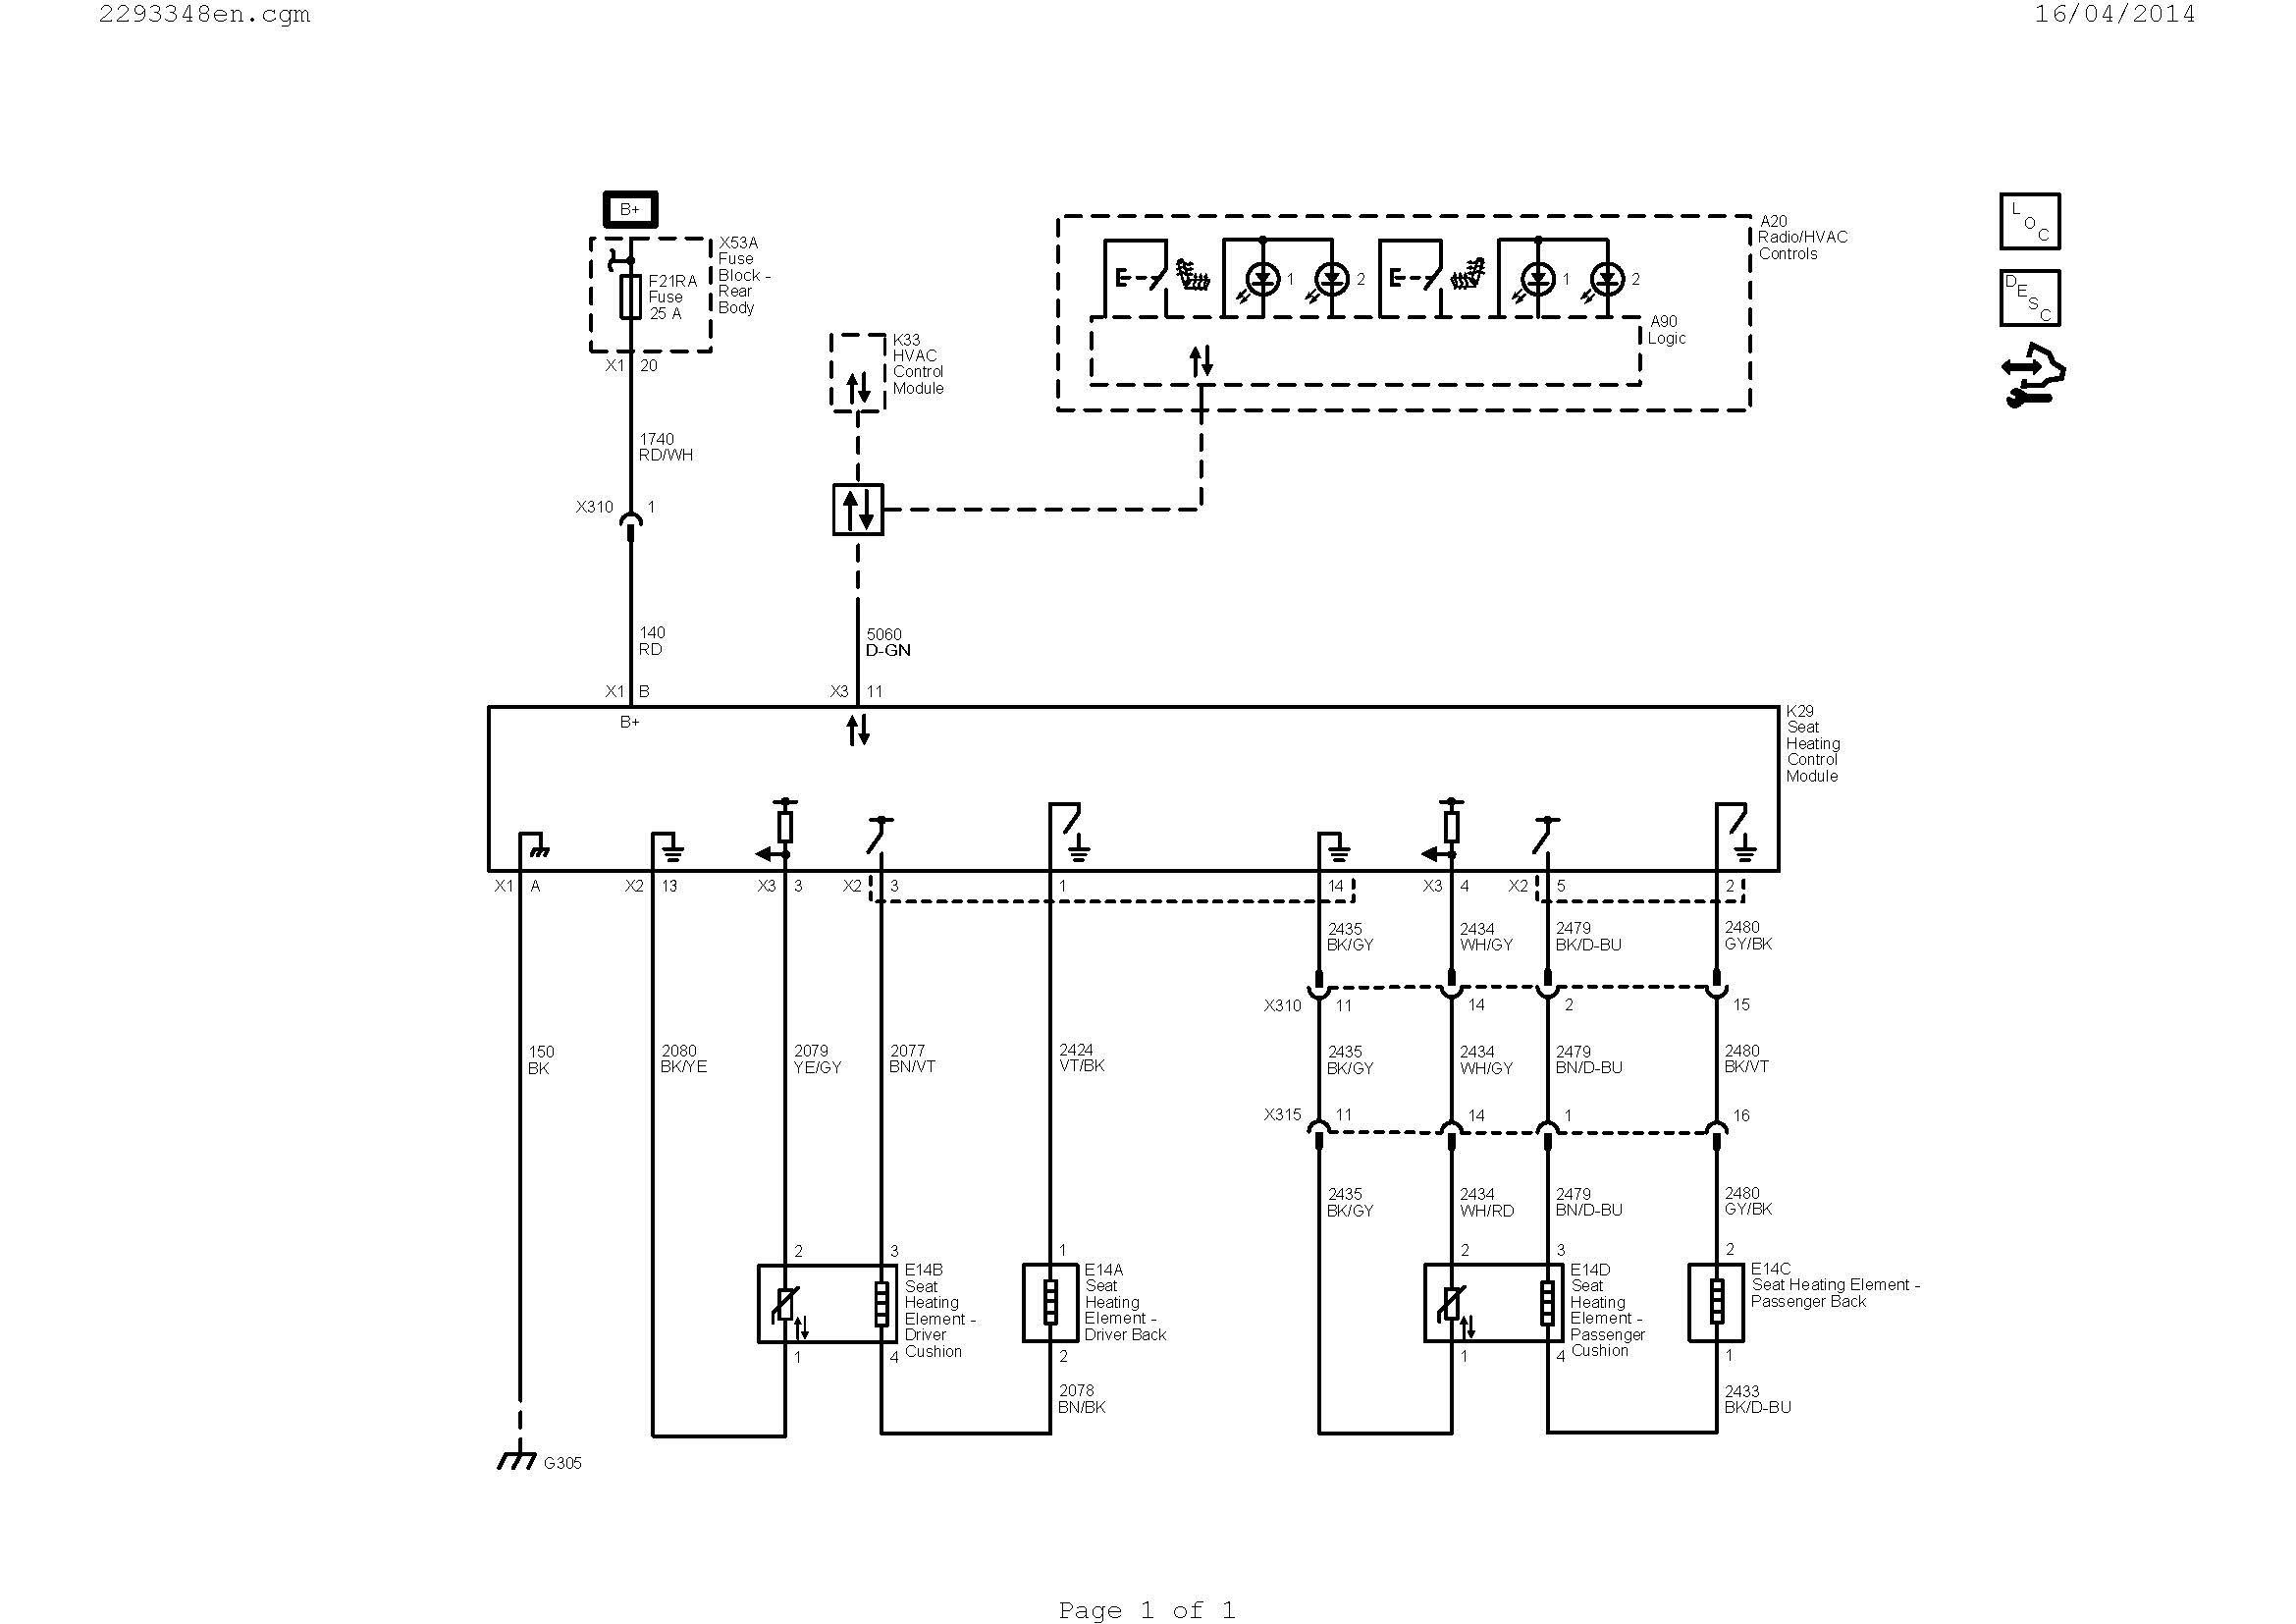 control relay wiring diagram Collection-Control Relay Wiring Diagram Control Relay Wiring Diagram Download Wiring Diagram for A Relay Switch 15-e